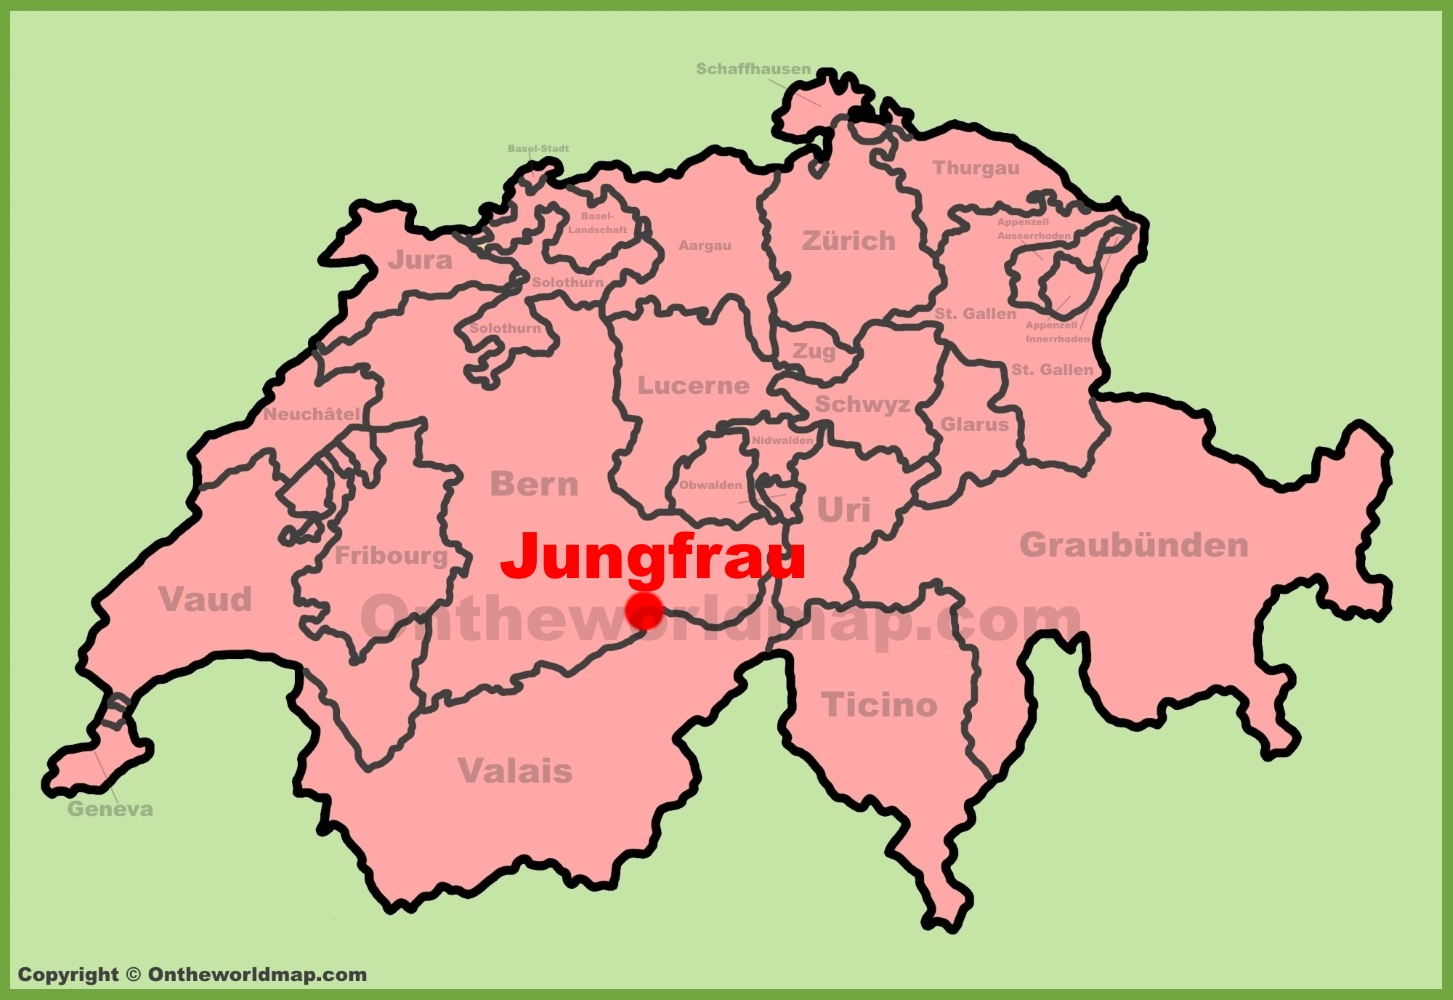 Jungfrau location on the Switzerland map